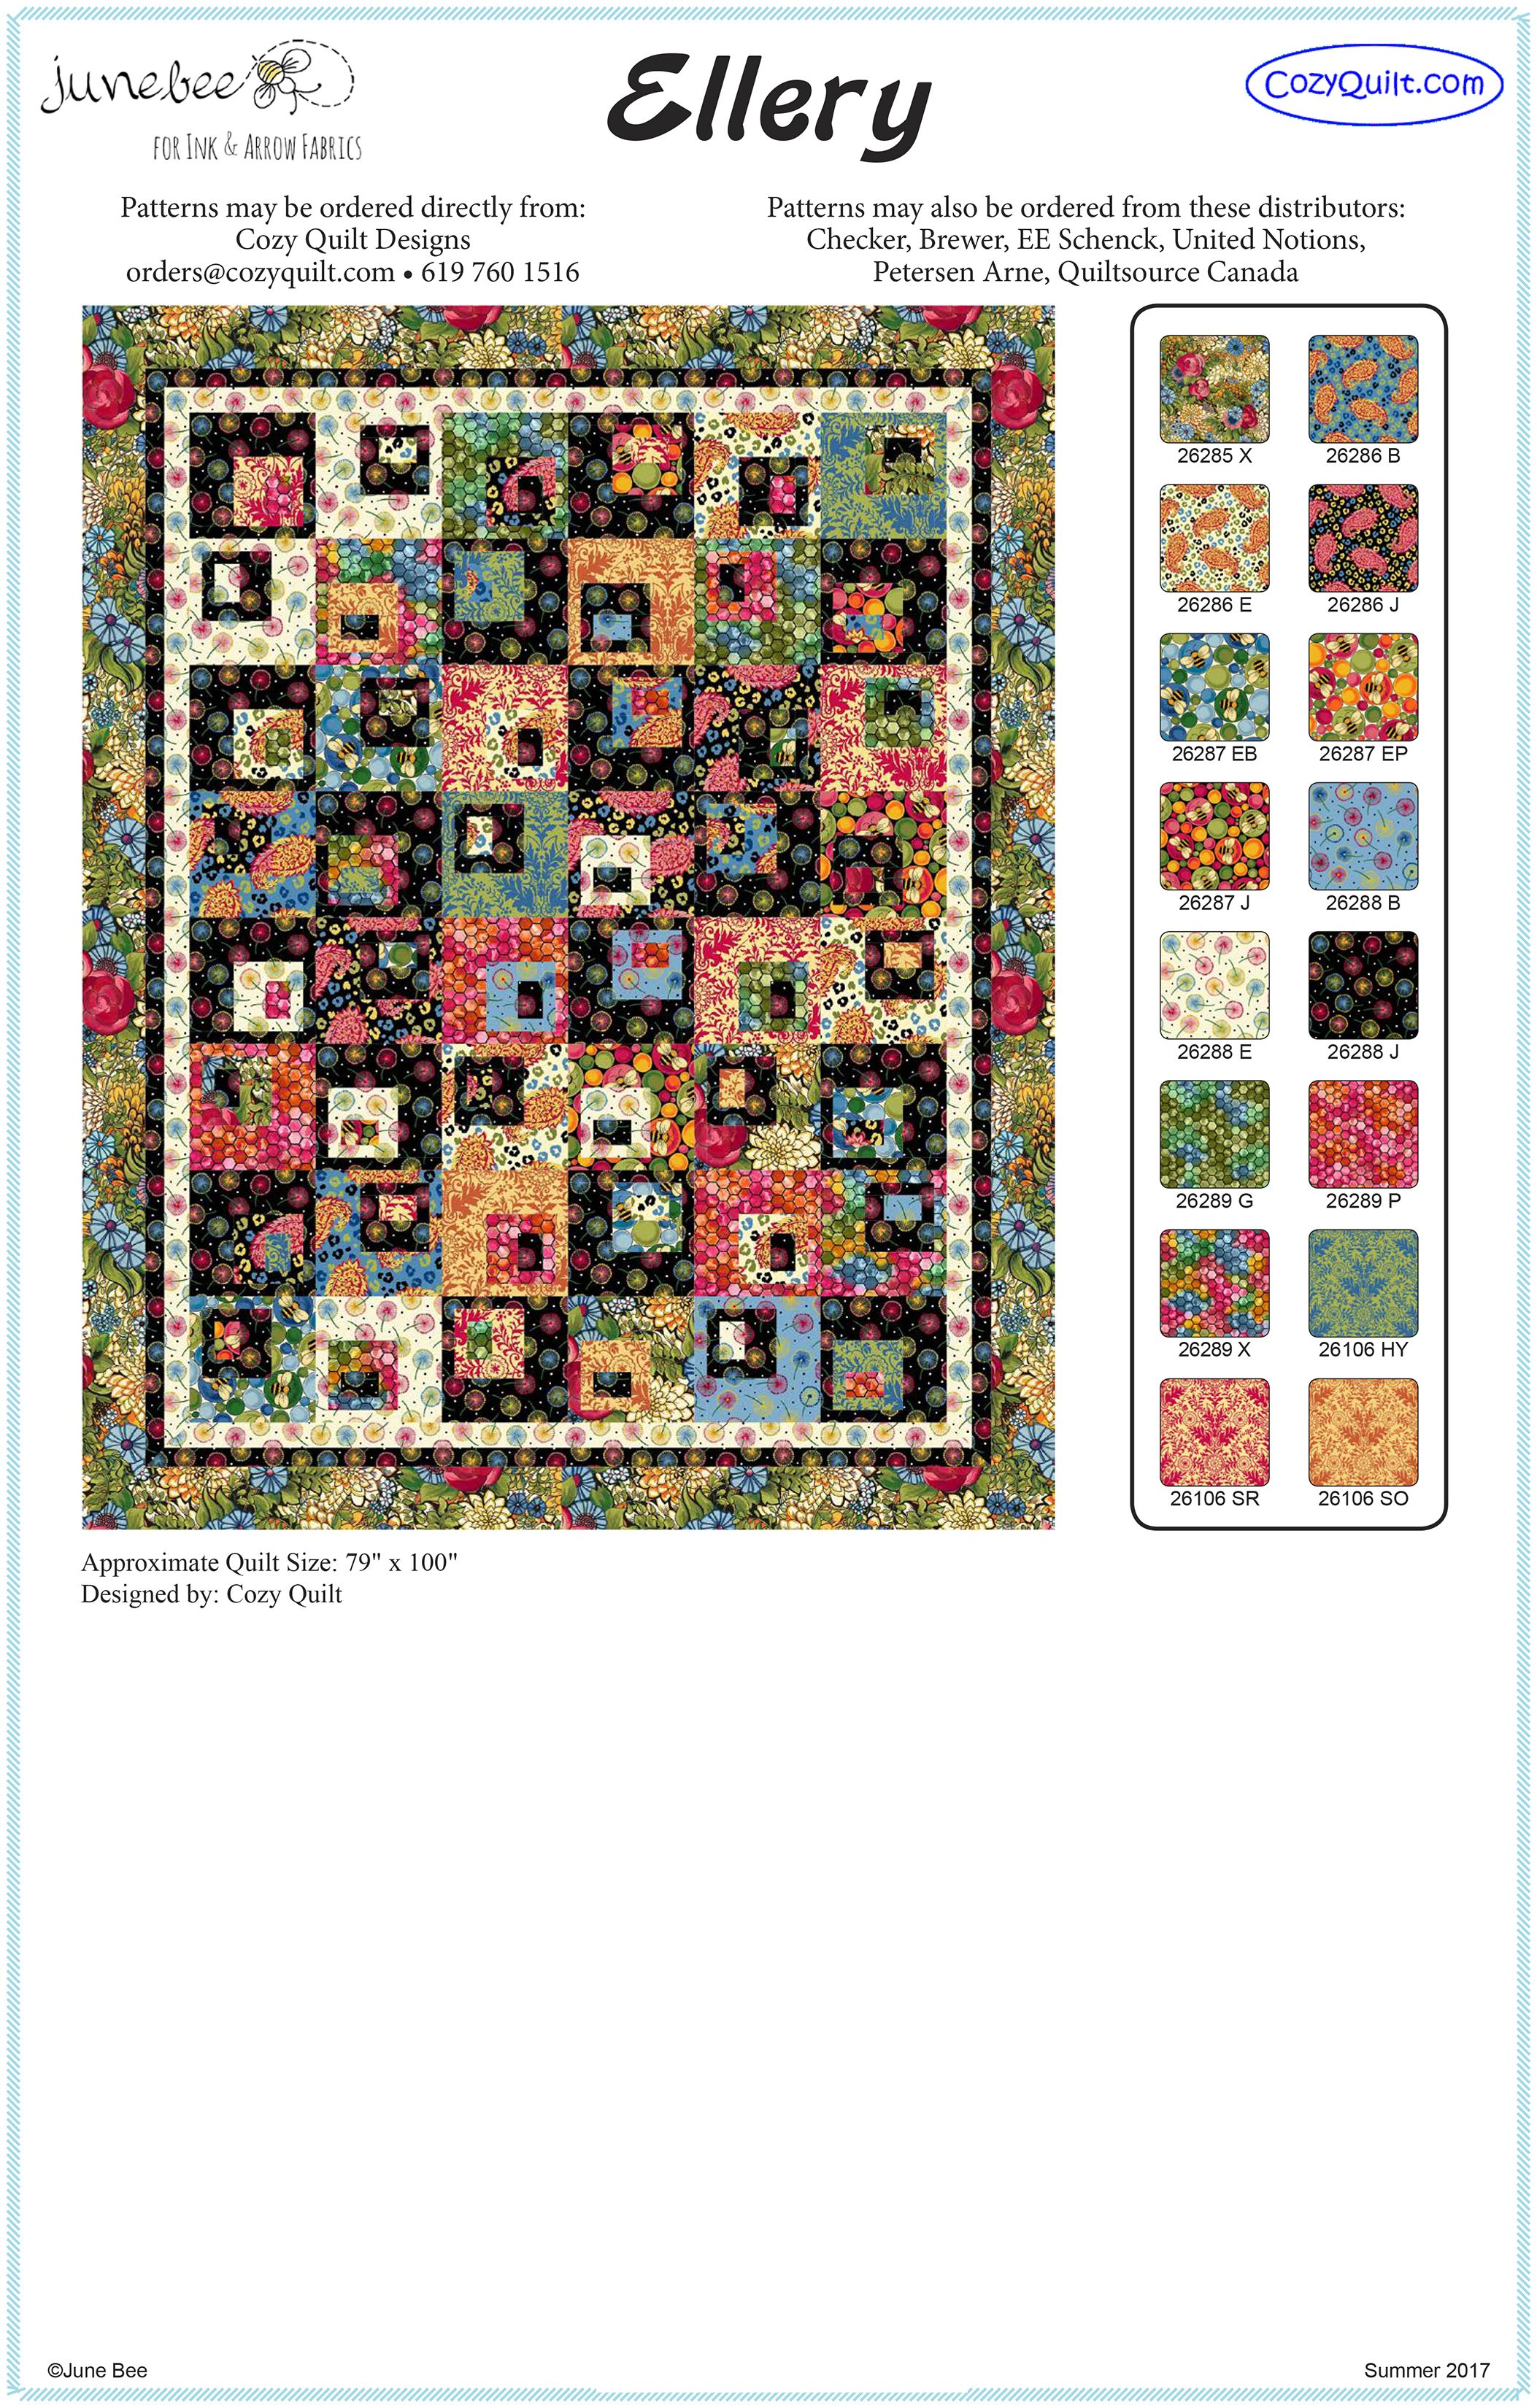 Order directions and project sheet for this fun and on trend quilt ... : the cozy quilt - Adamdwight.com